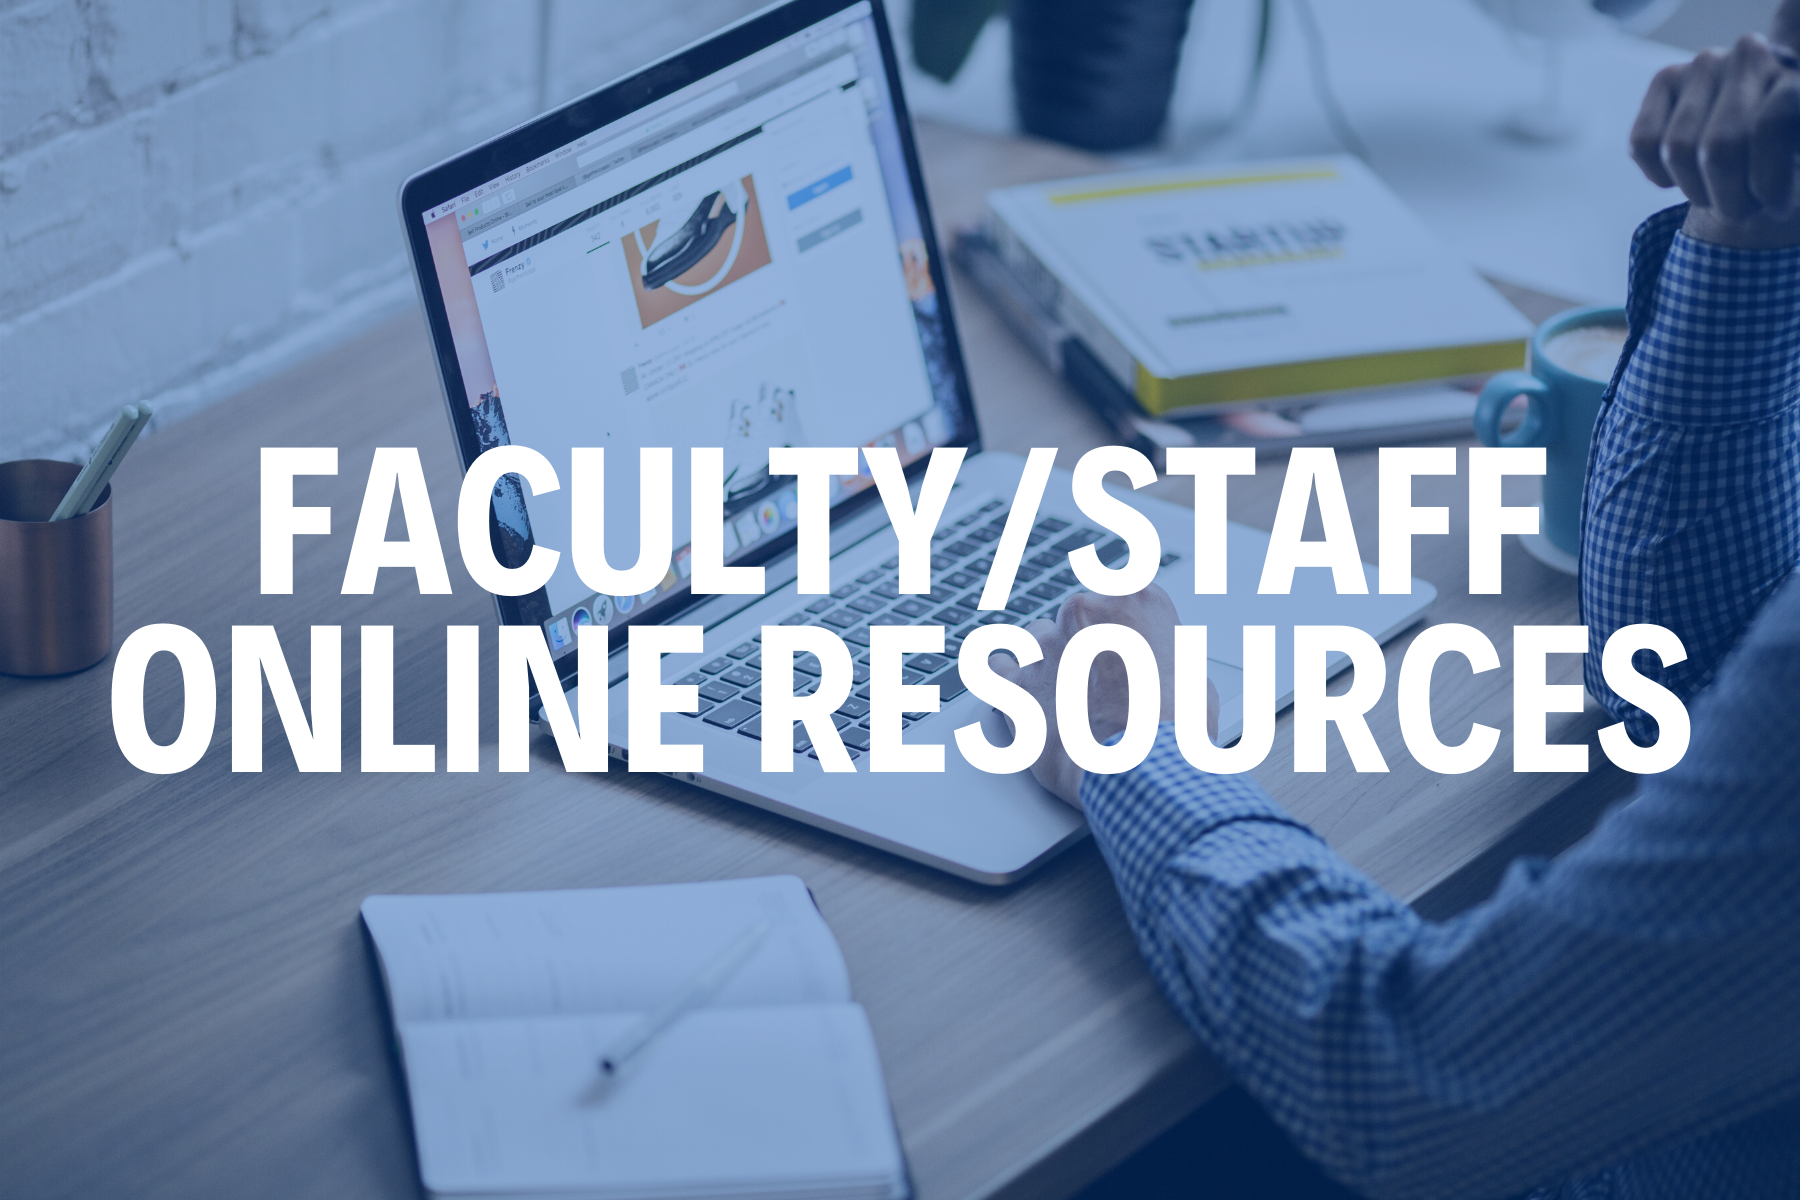 FACULTY STAFF ONLINE RESOURCES